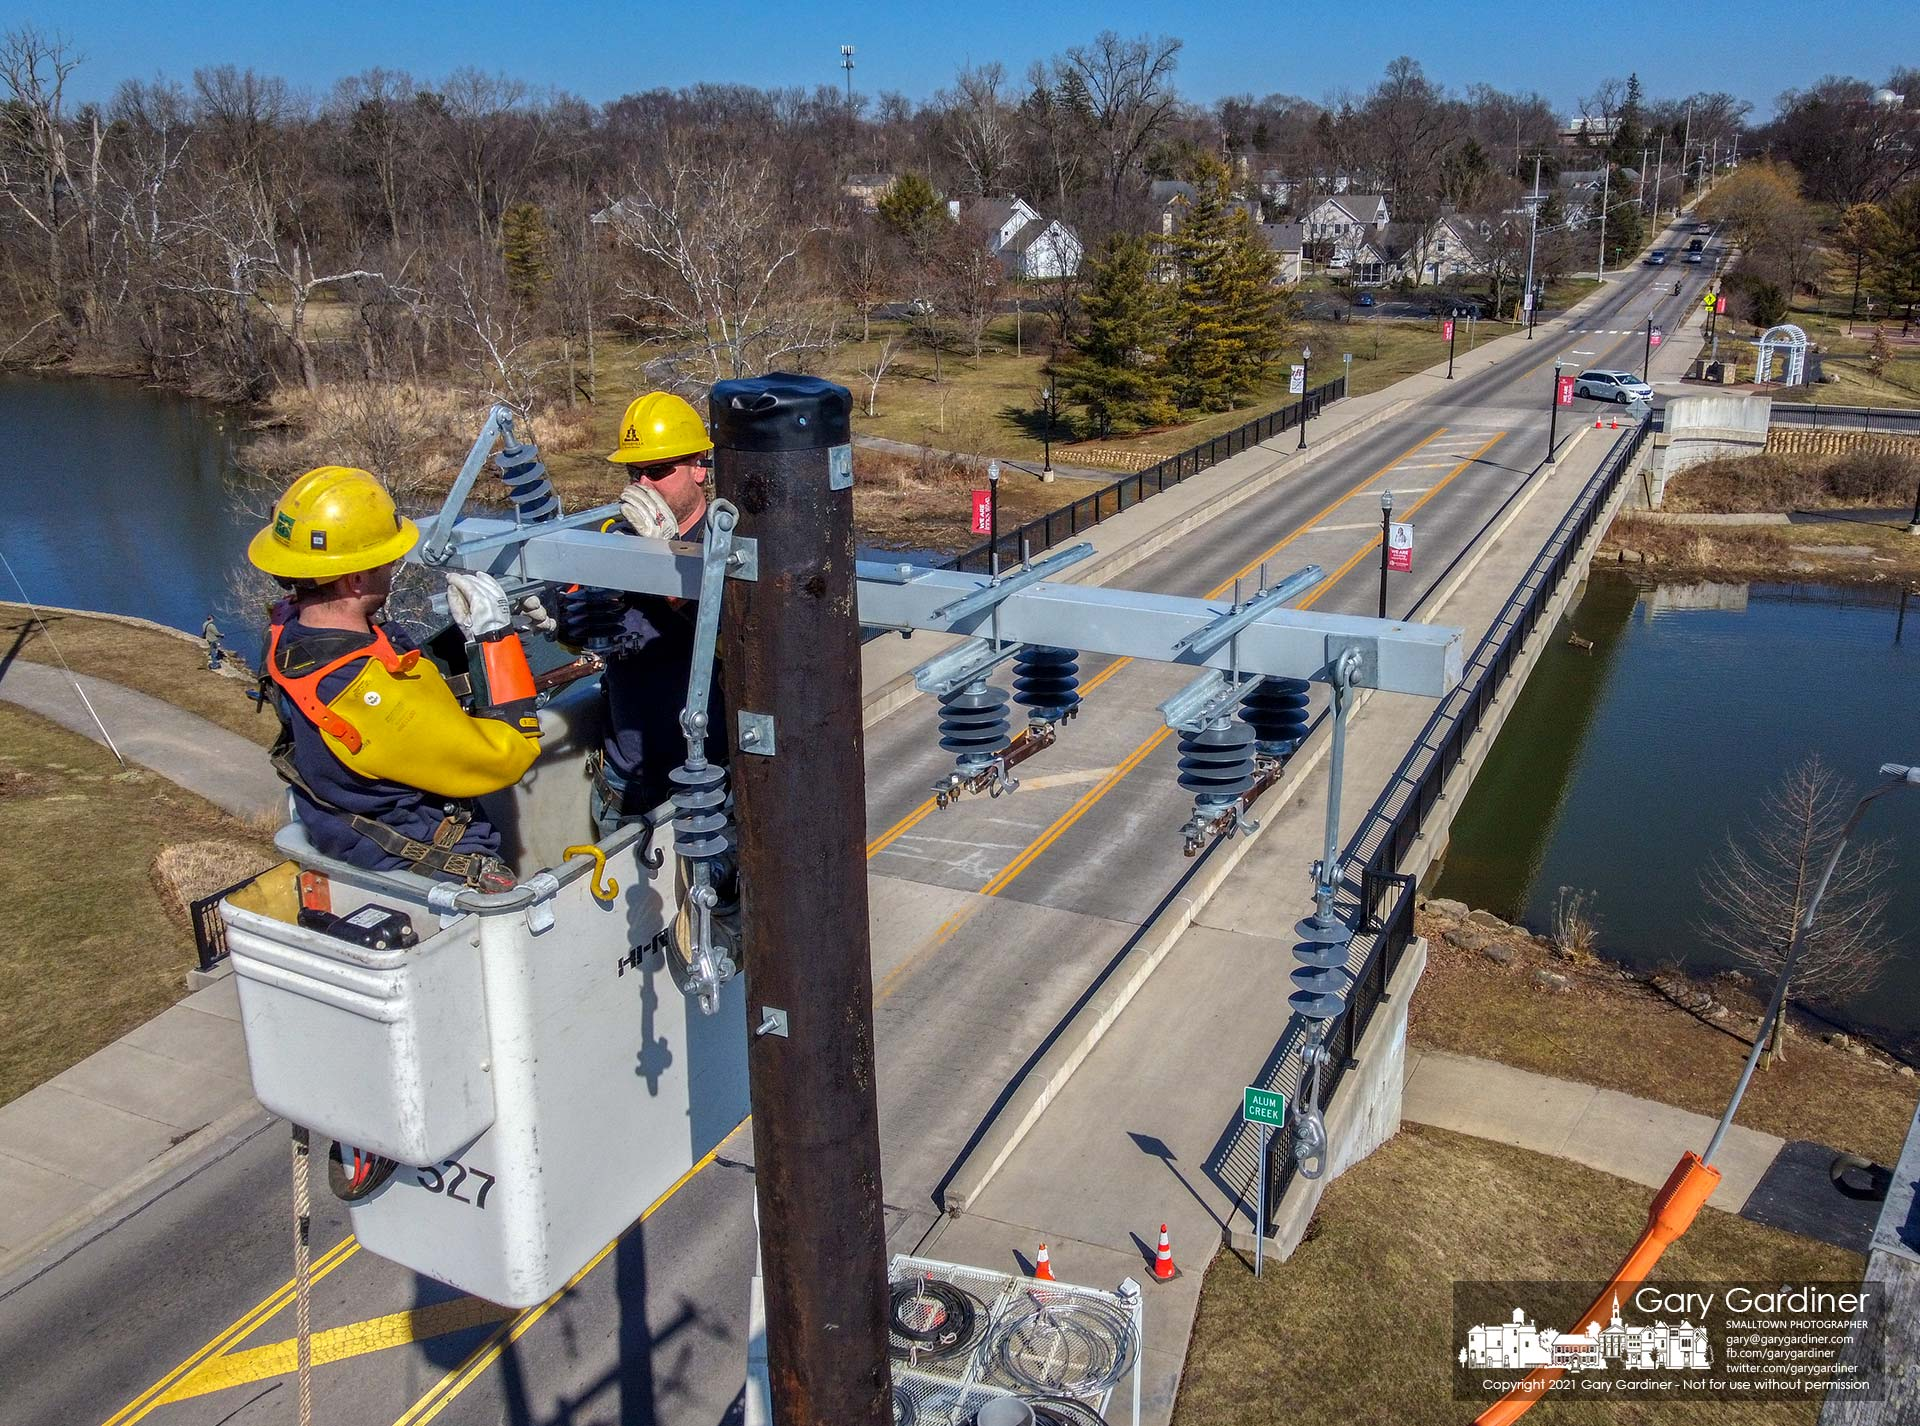 A city electric crew installs a crossbar on a new utility pole at the Main Street bridge where power lines will be directed underground as the nearby substation is upgraded. My Final Photo for March 3, 2021.